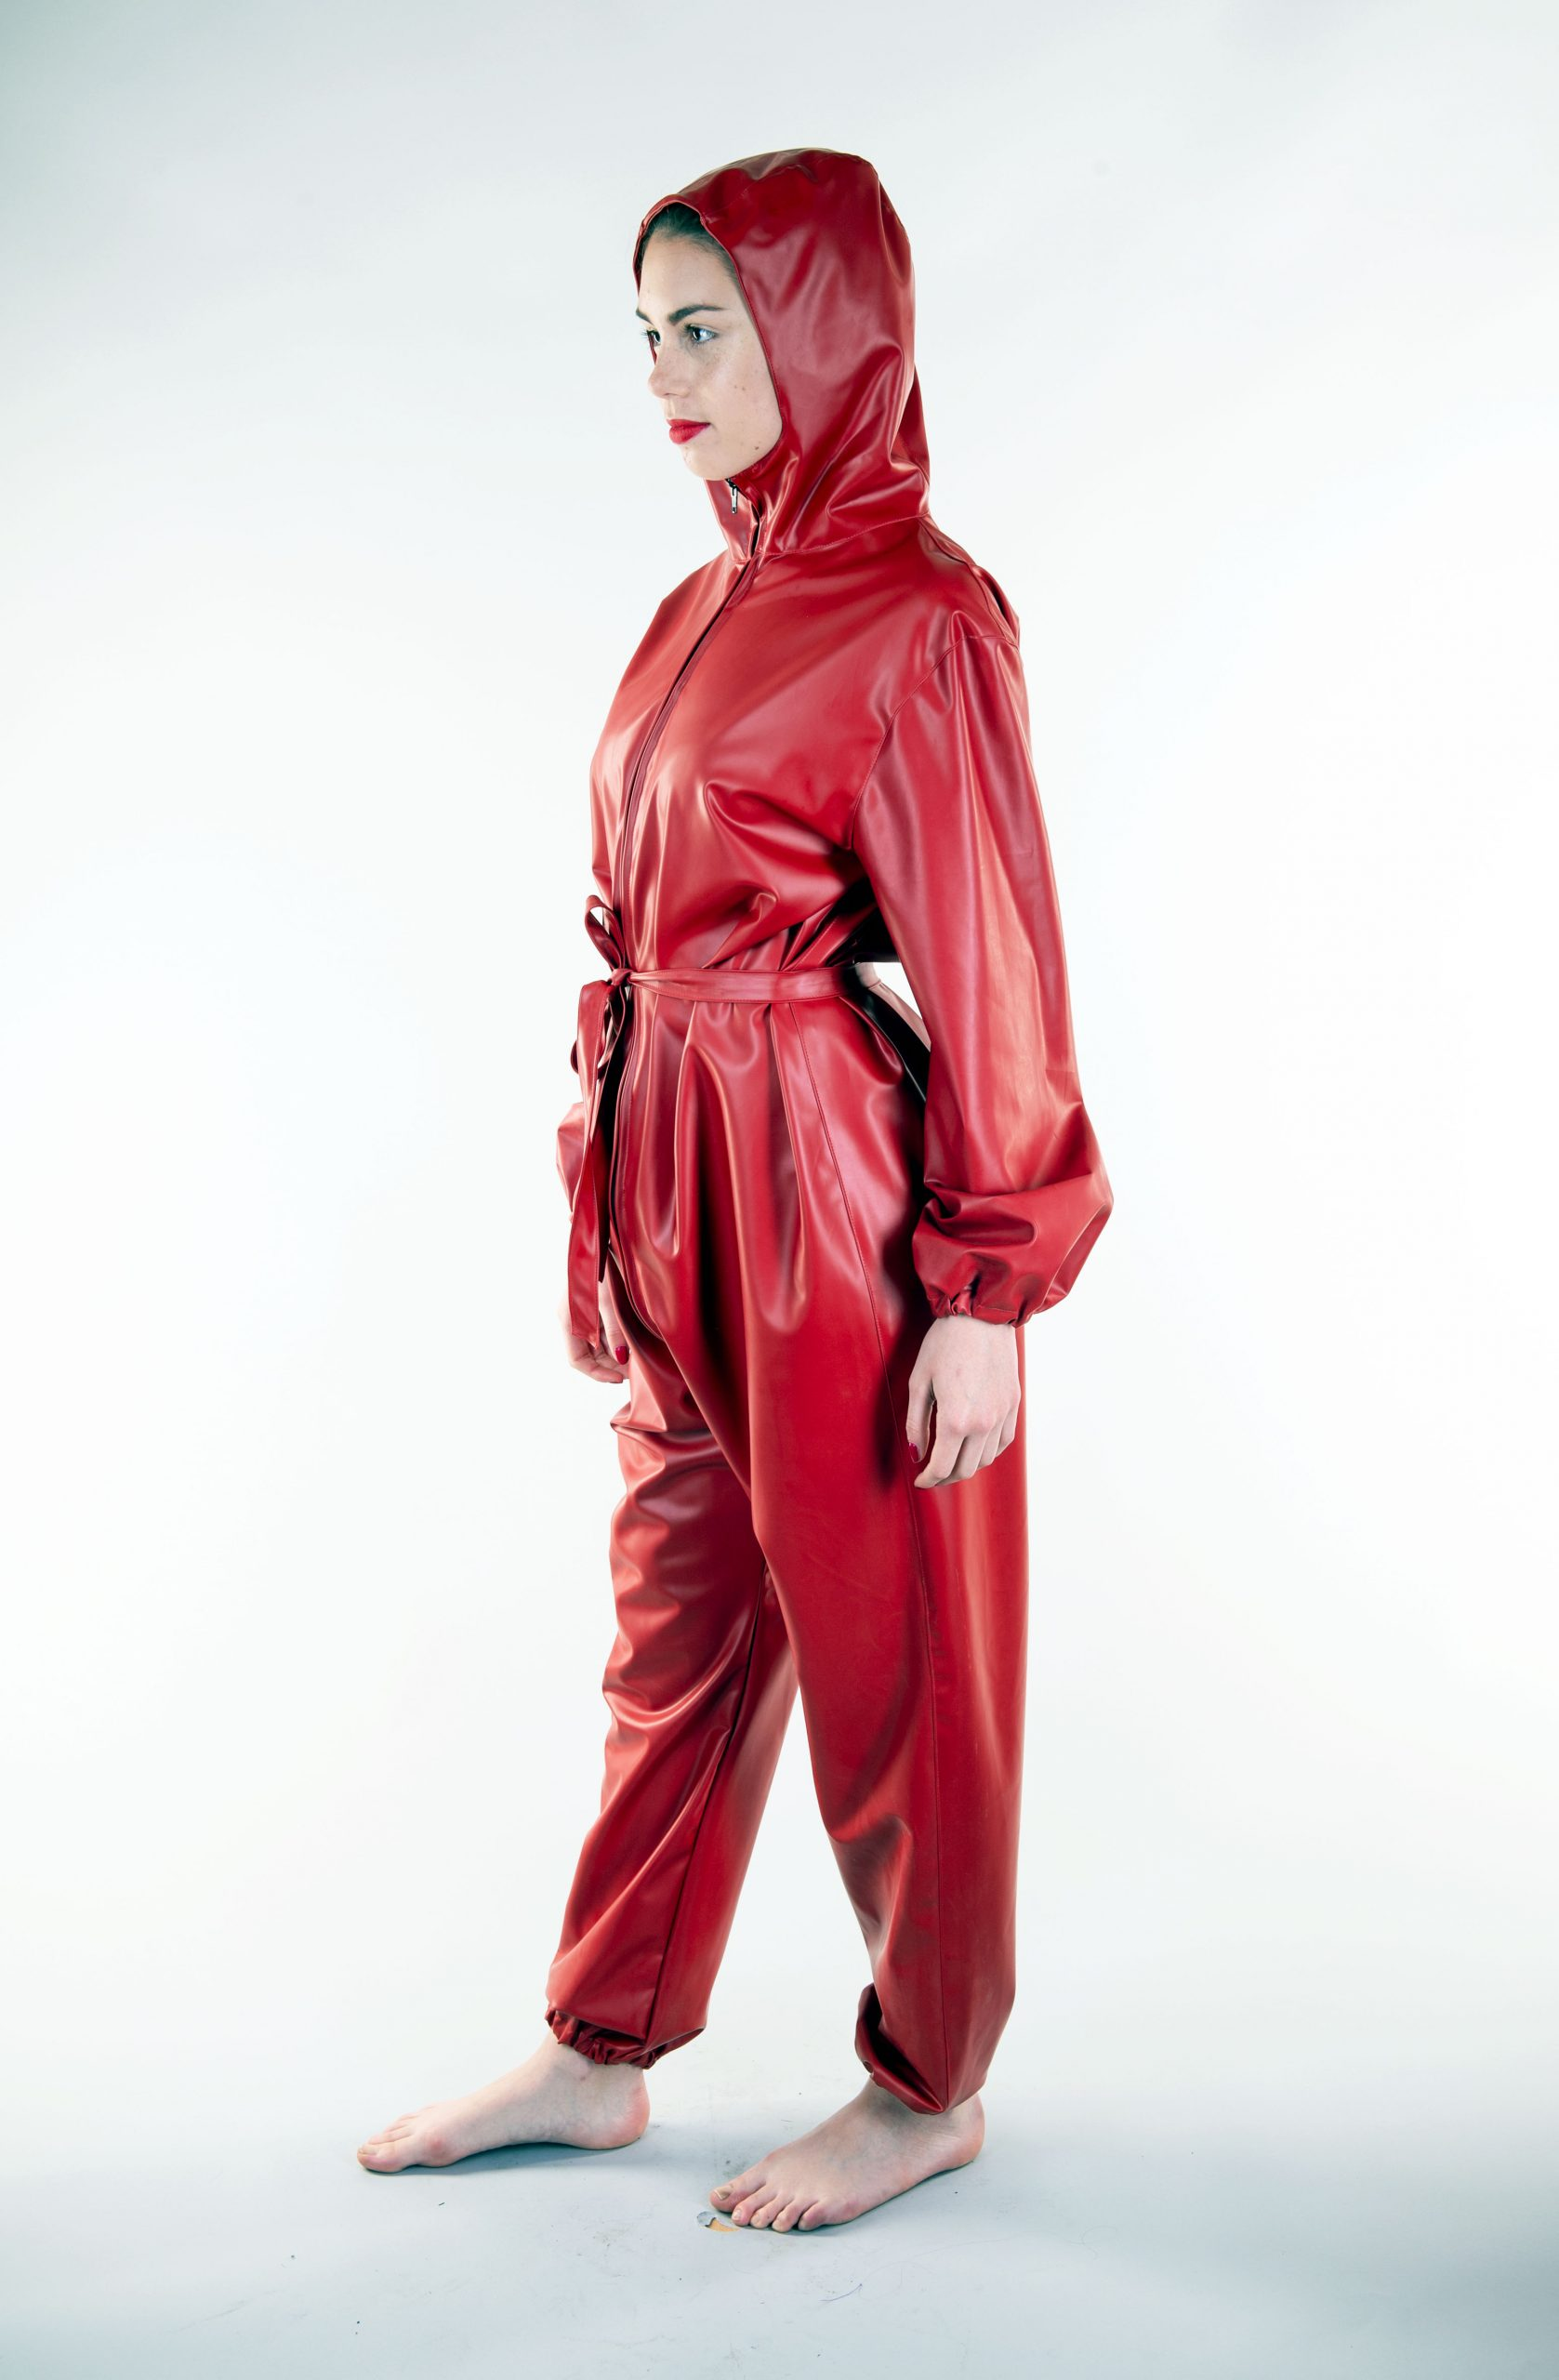 LADIES EXERCISE SUIT with attached hood, tie belt and two way front zip -  Weathervain